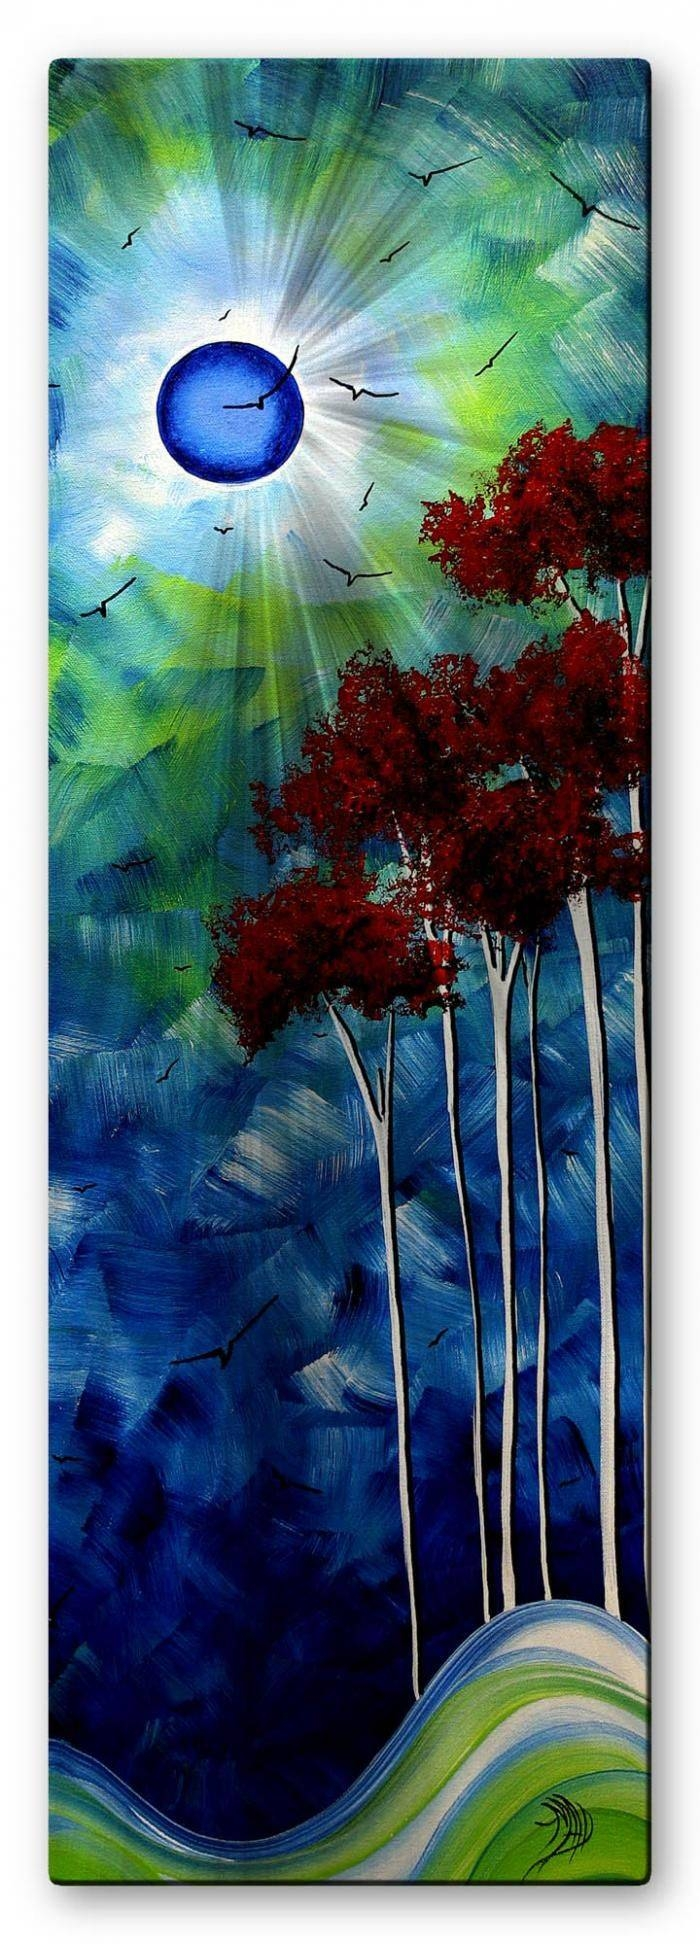 65 Best Artist  Megan Duncanson Images On Pinterest | Abstract Art For Most Popular Ash Carl Metal Art (View 1 of 30)